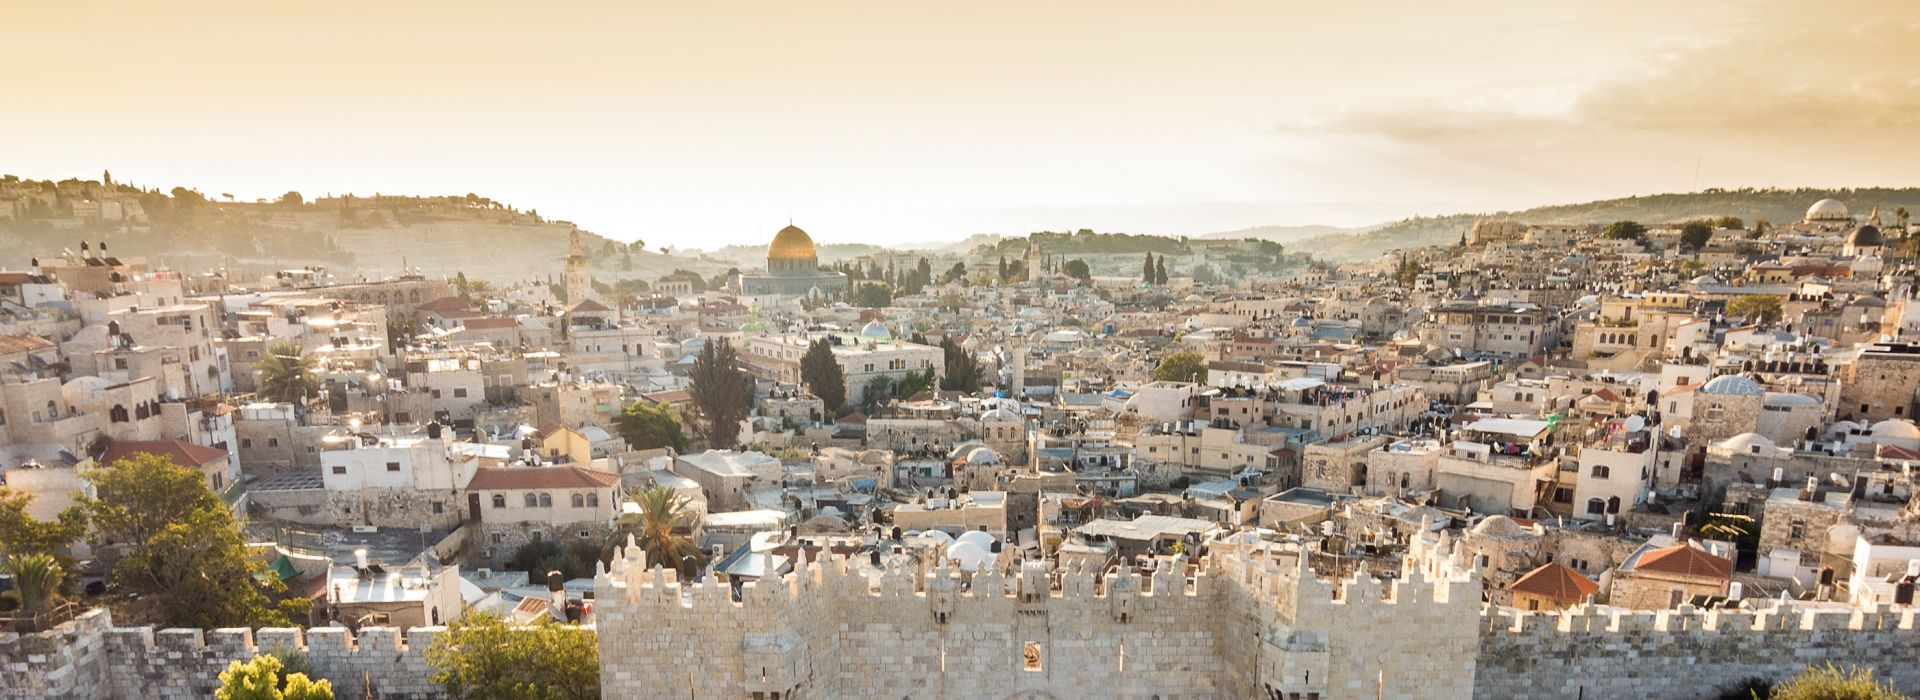 Walking tours in Israel